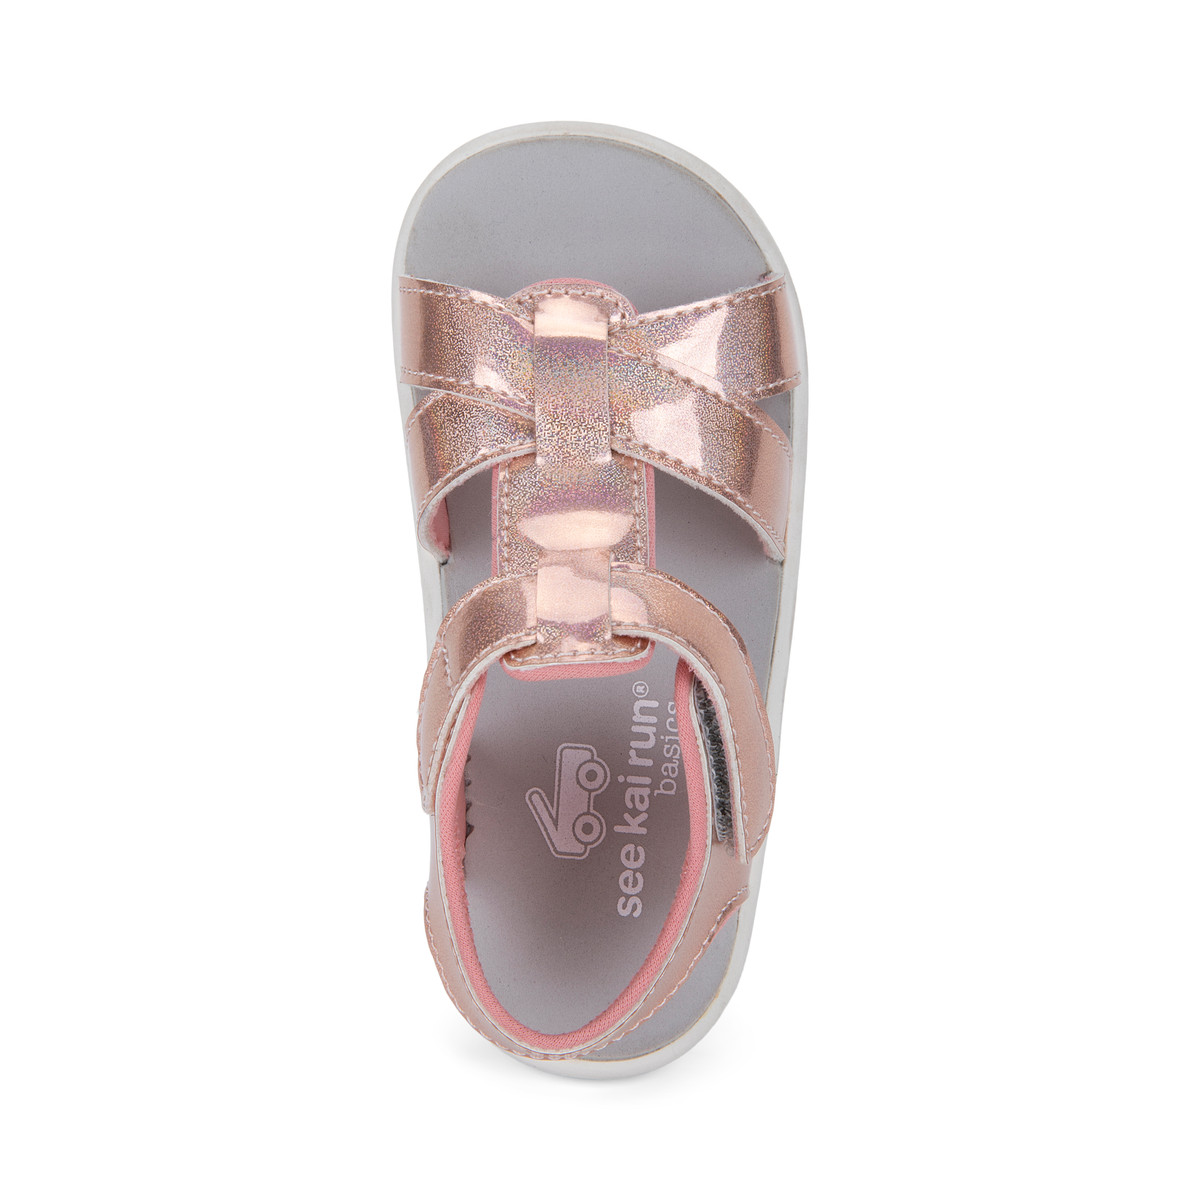 Top Down view of the Shayna Rose Iridescent sandal